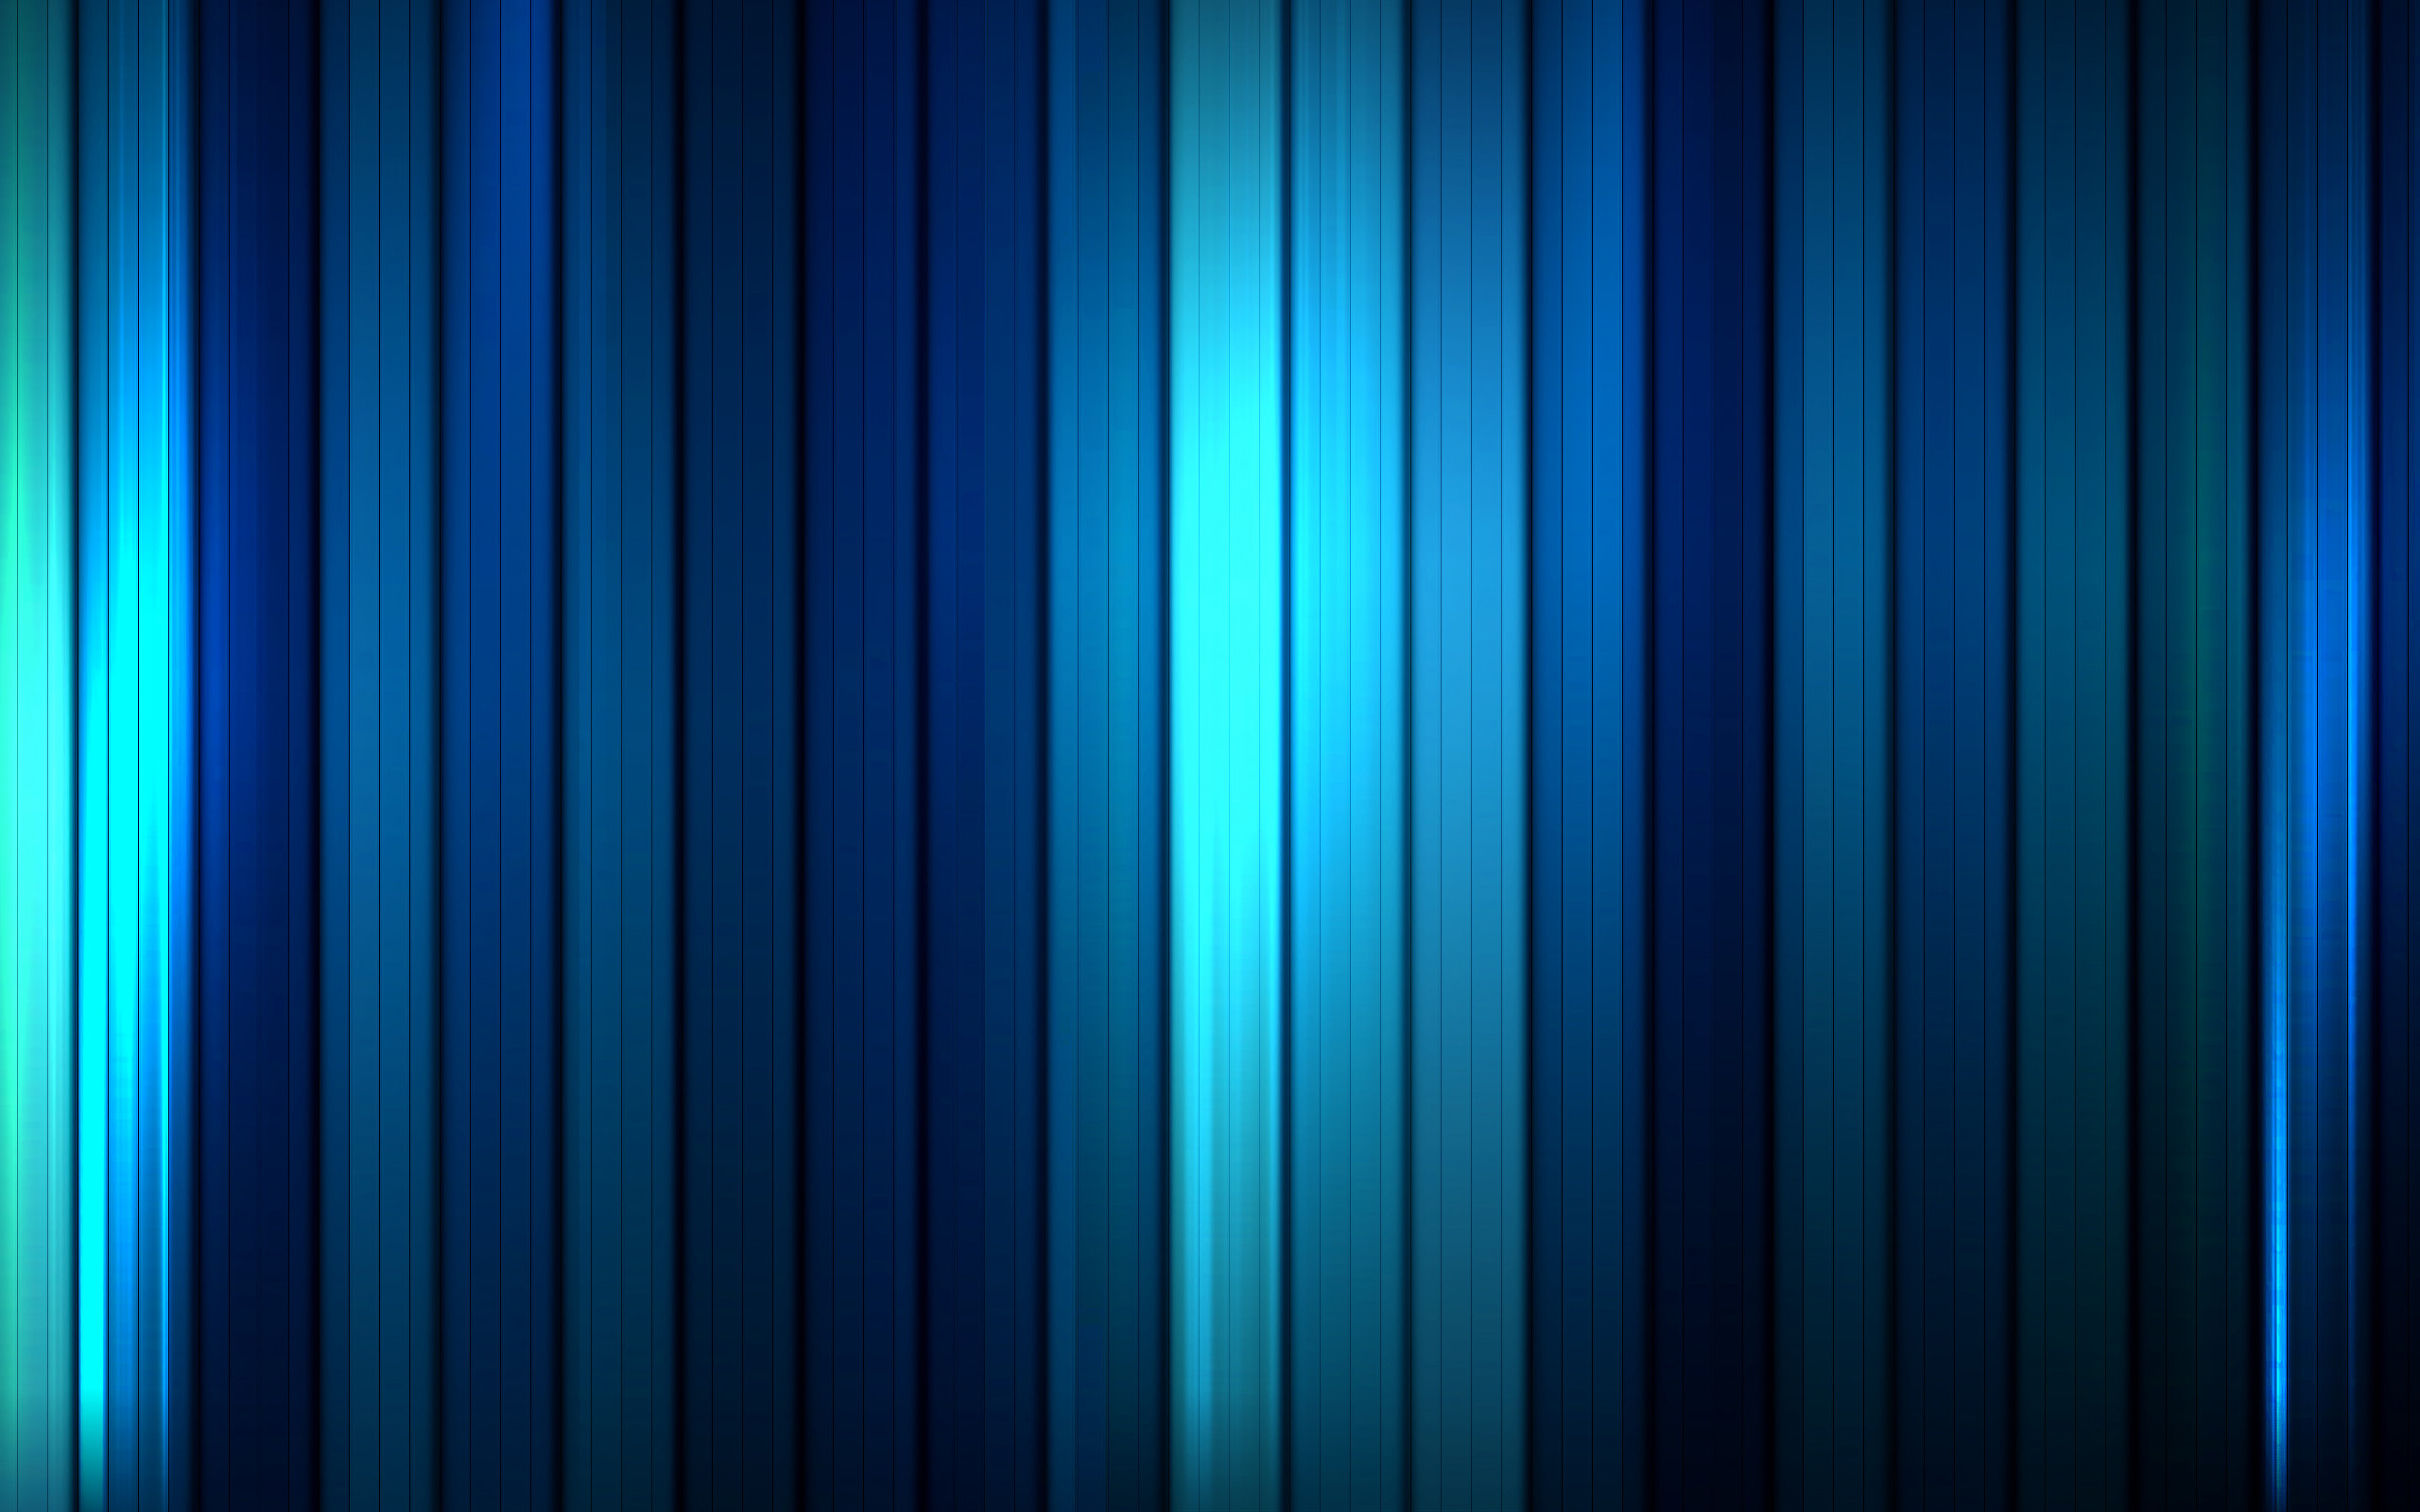 Line Texture Background : Vertical lines texture blue